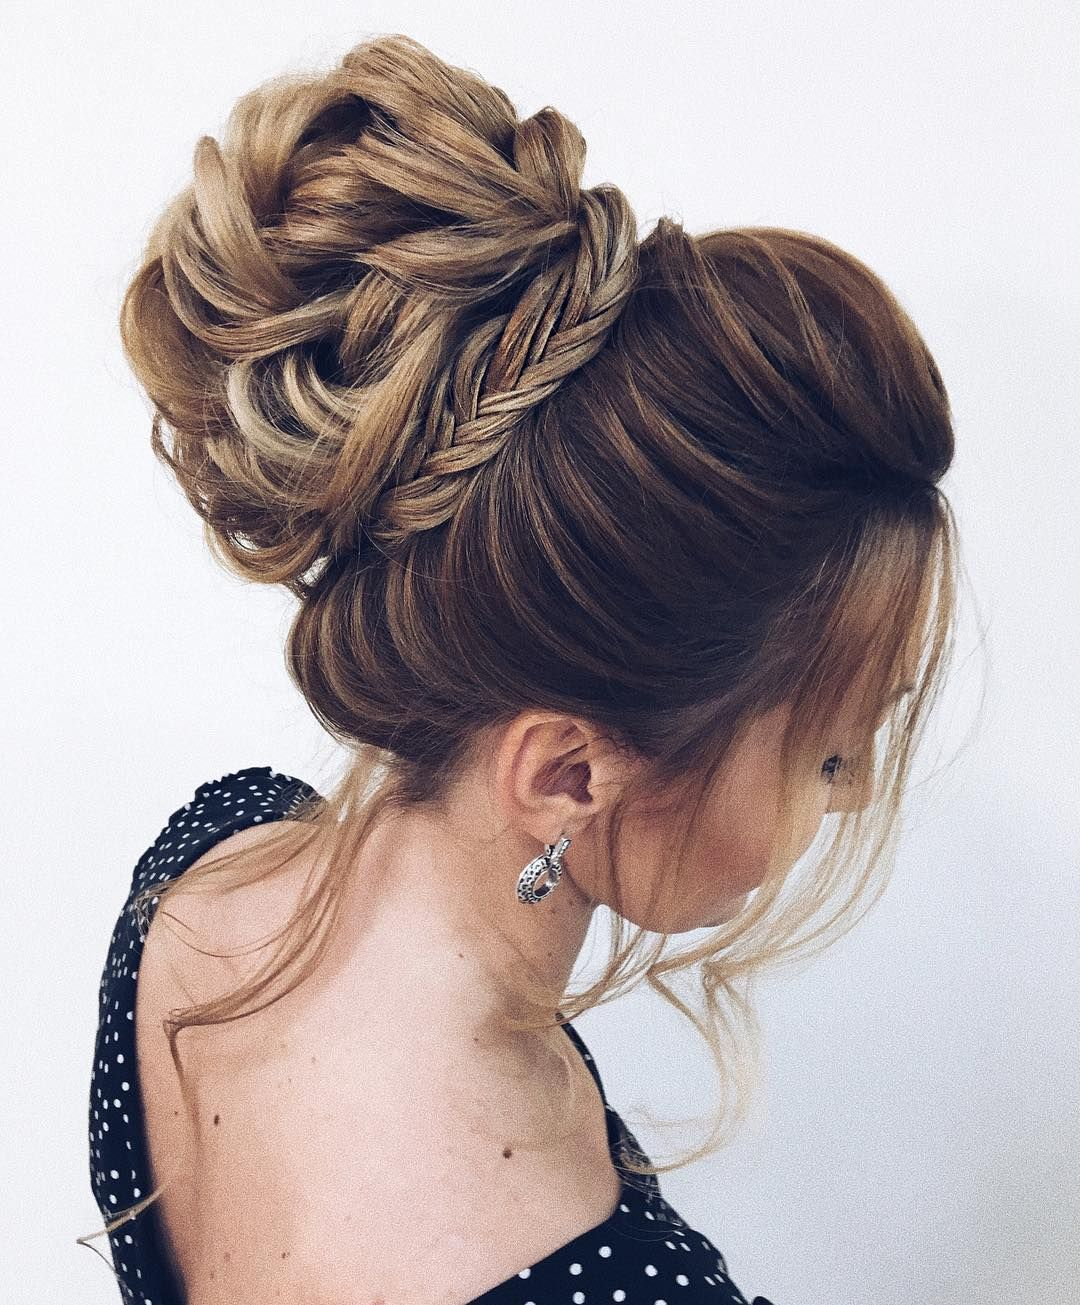 Bun Hairstyles 55 Amazing Updo Hairstyles With The Wow Factor  High Bun Hairstyles